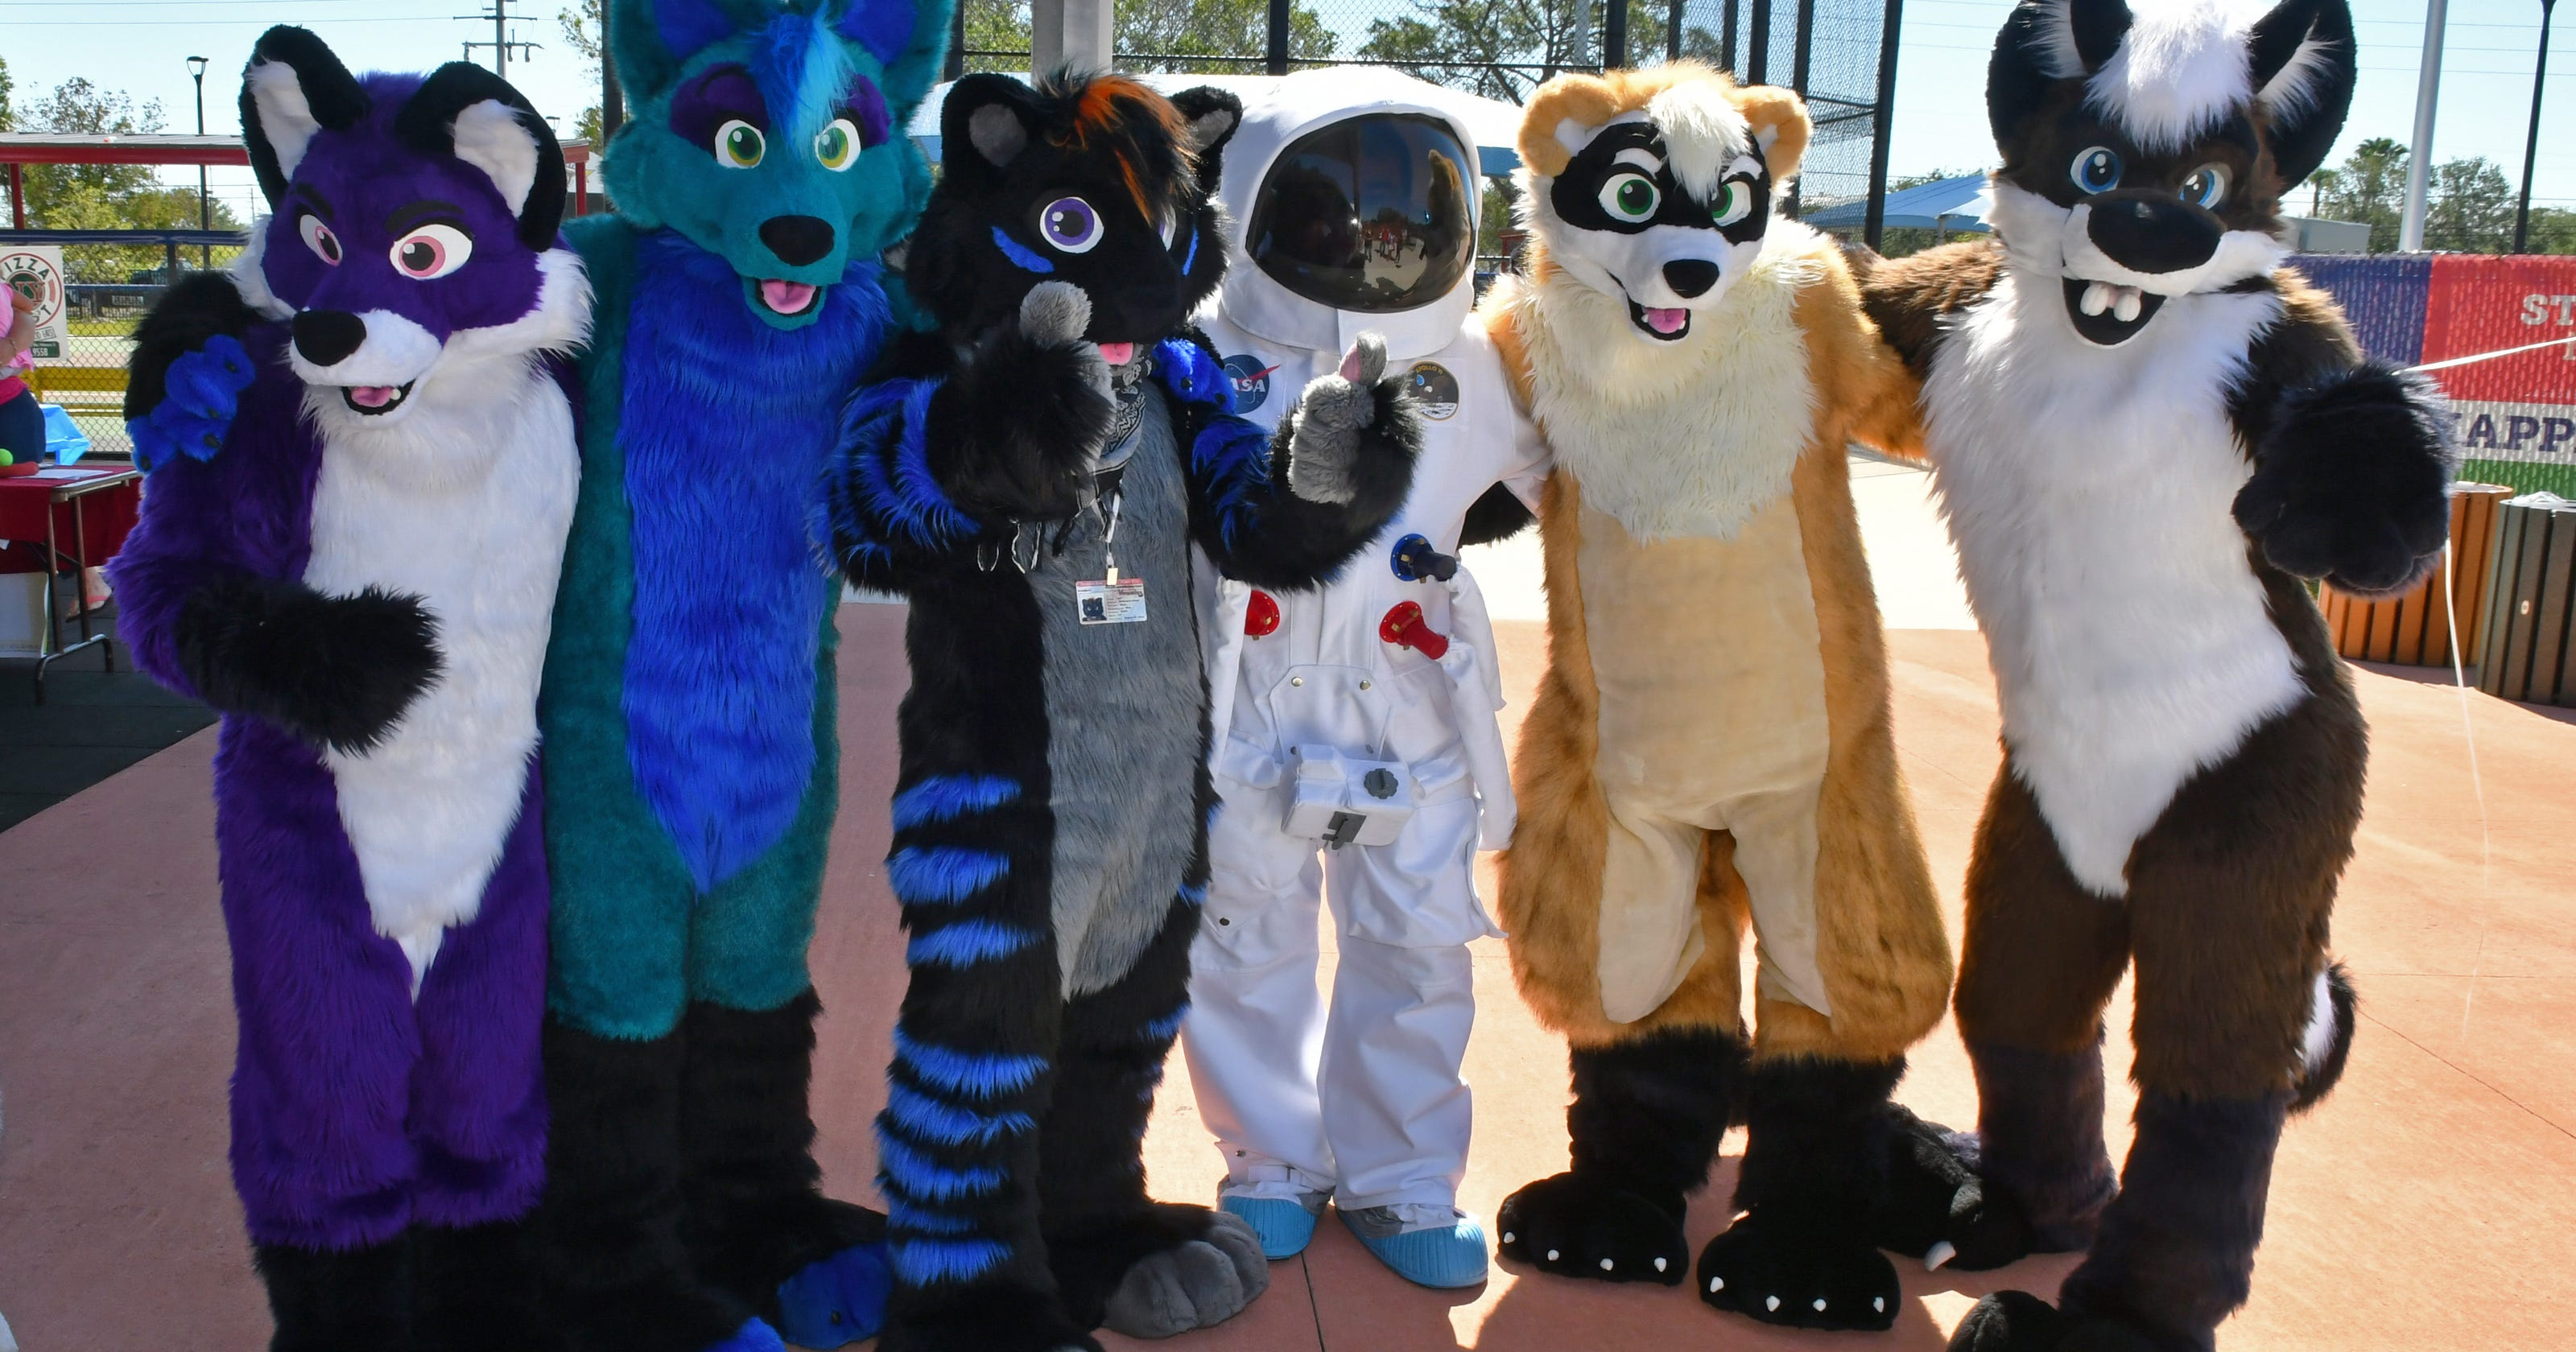 54cea0089 Unfurgettable  Megaplex in Orlando celebrates furry fandom